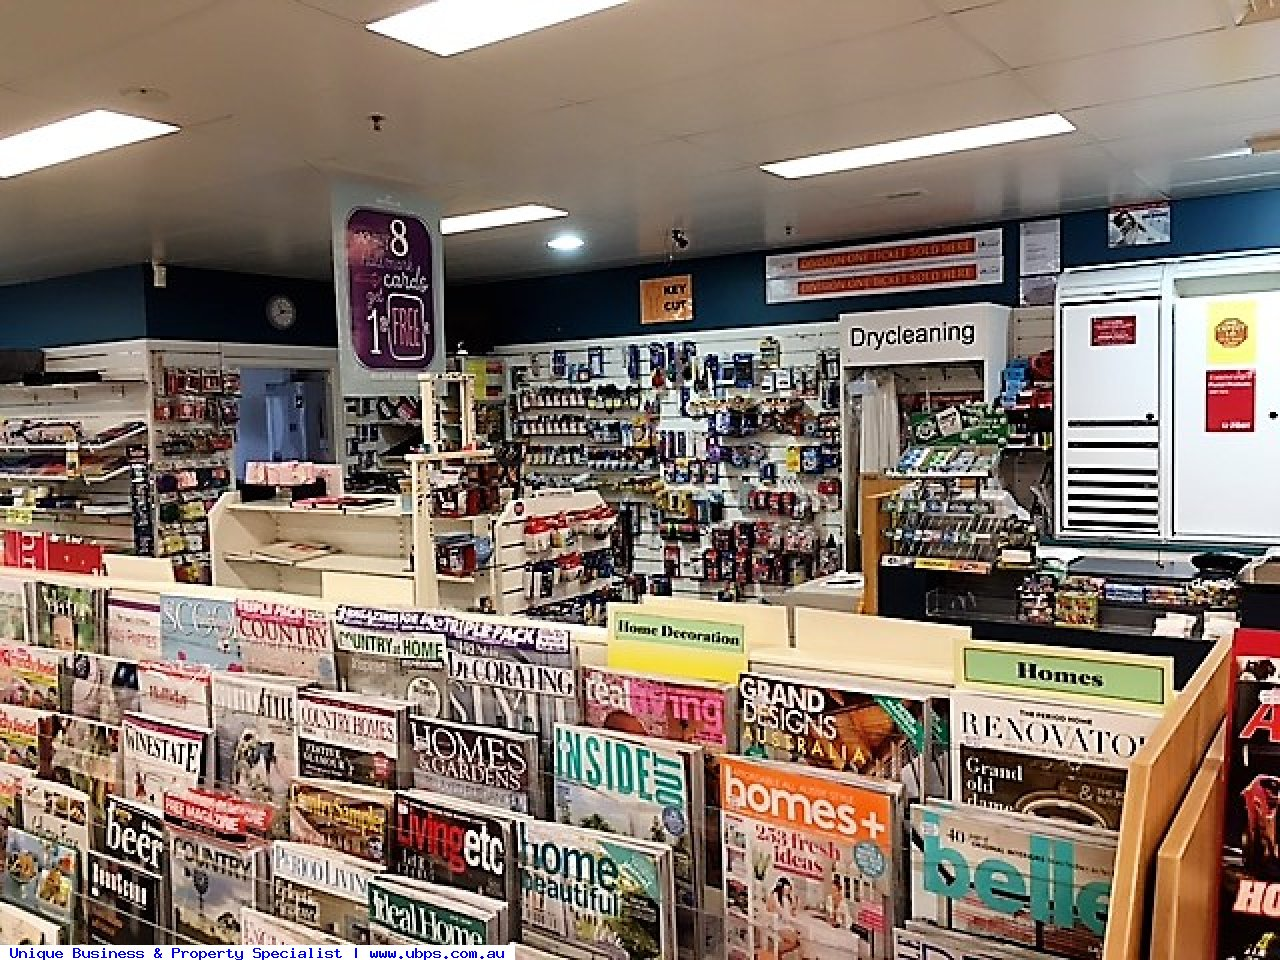 Value For Money Newsagent with Lotteries